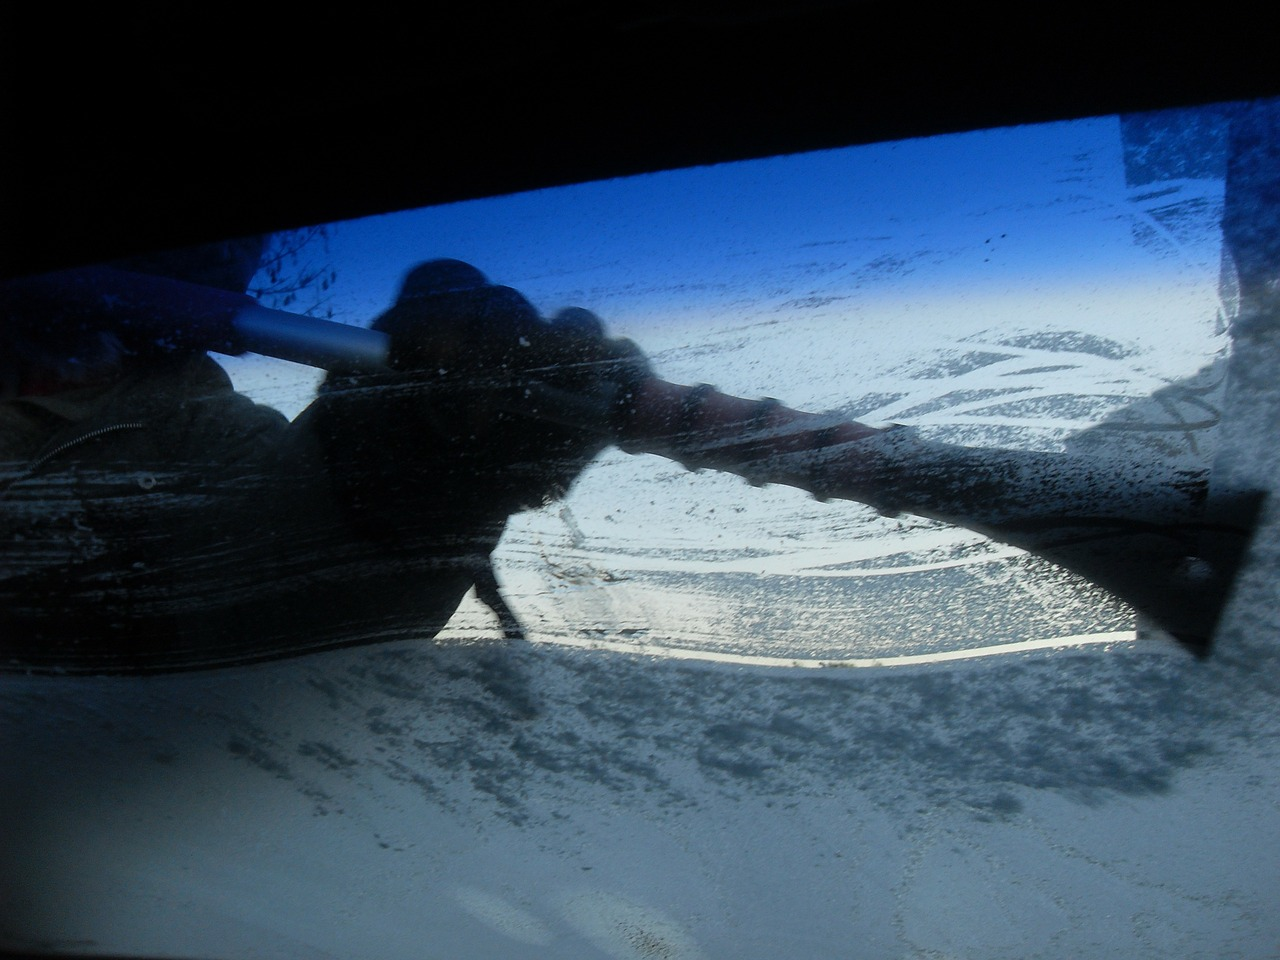 icy car windshield being scraped clear